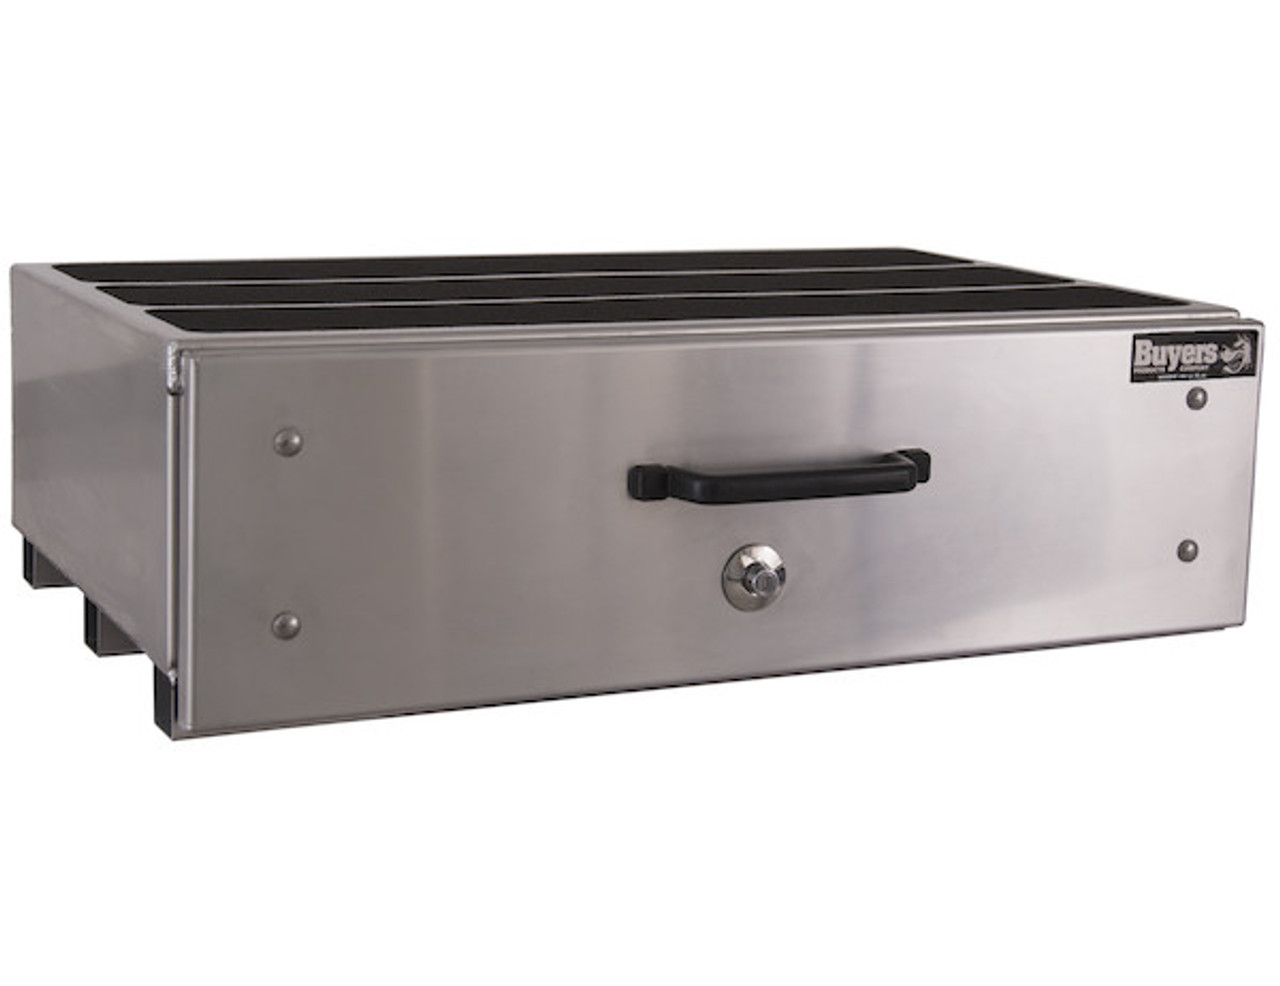 1718020 BUYERS SMOOTH ALUMINUM SLIDE OUT TRUCK BED TOOLBOX